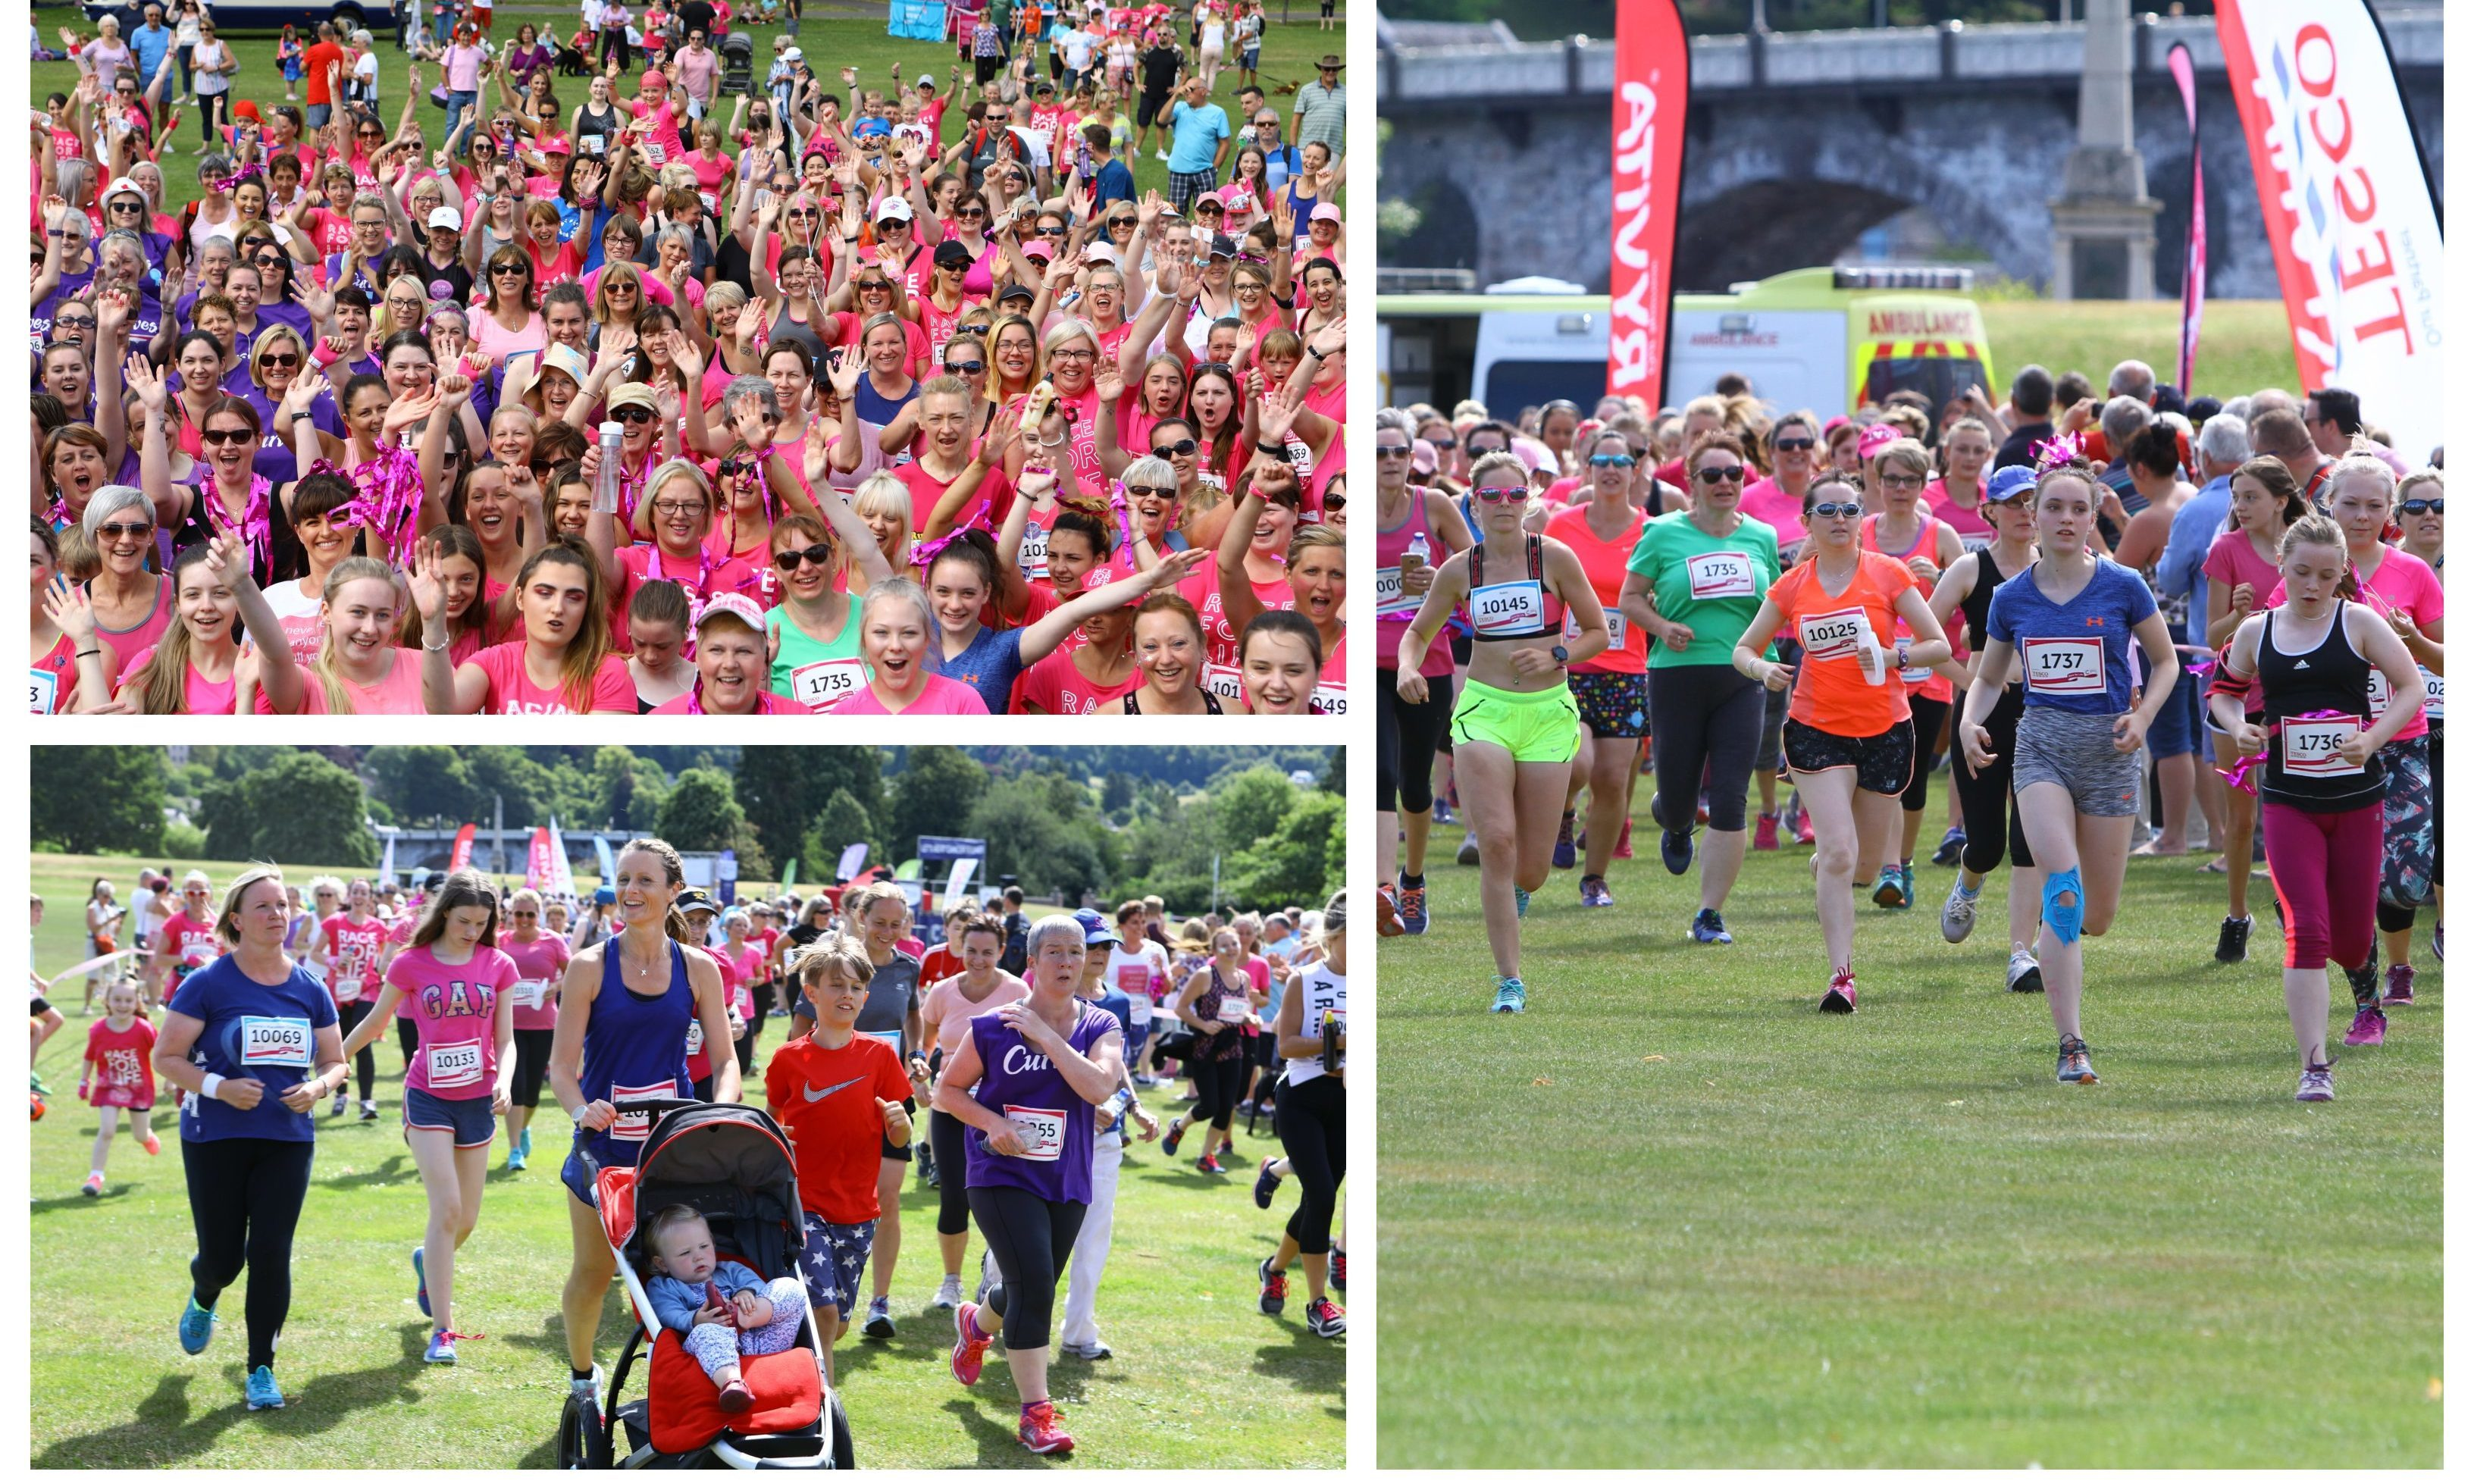 The 2018 Race for Life at North Inch, Perth.